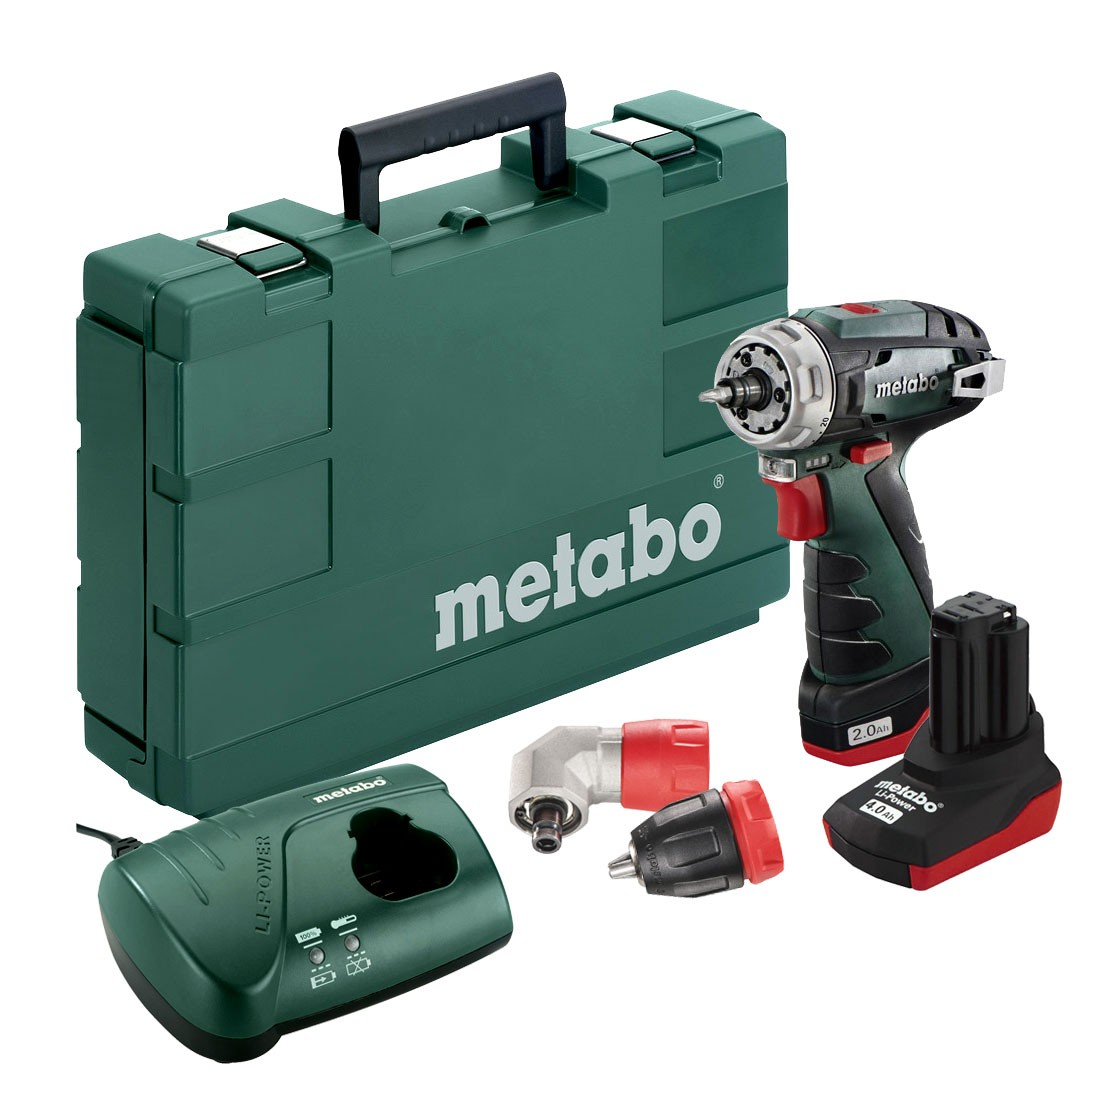 Metabo PowerMaxx BS Quick Pro 10.8v Cordless Drill Driver inc 1x 2.0Ah & 1x 4.0Ah Batteries